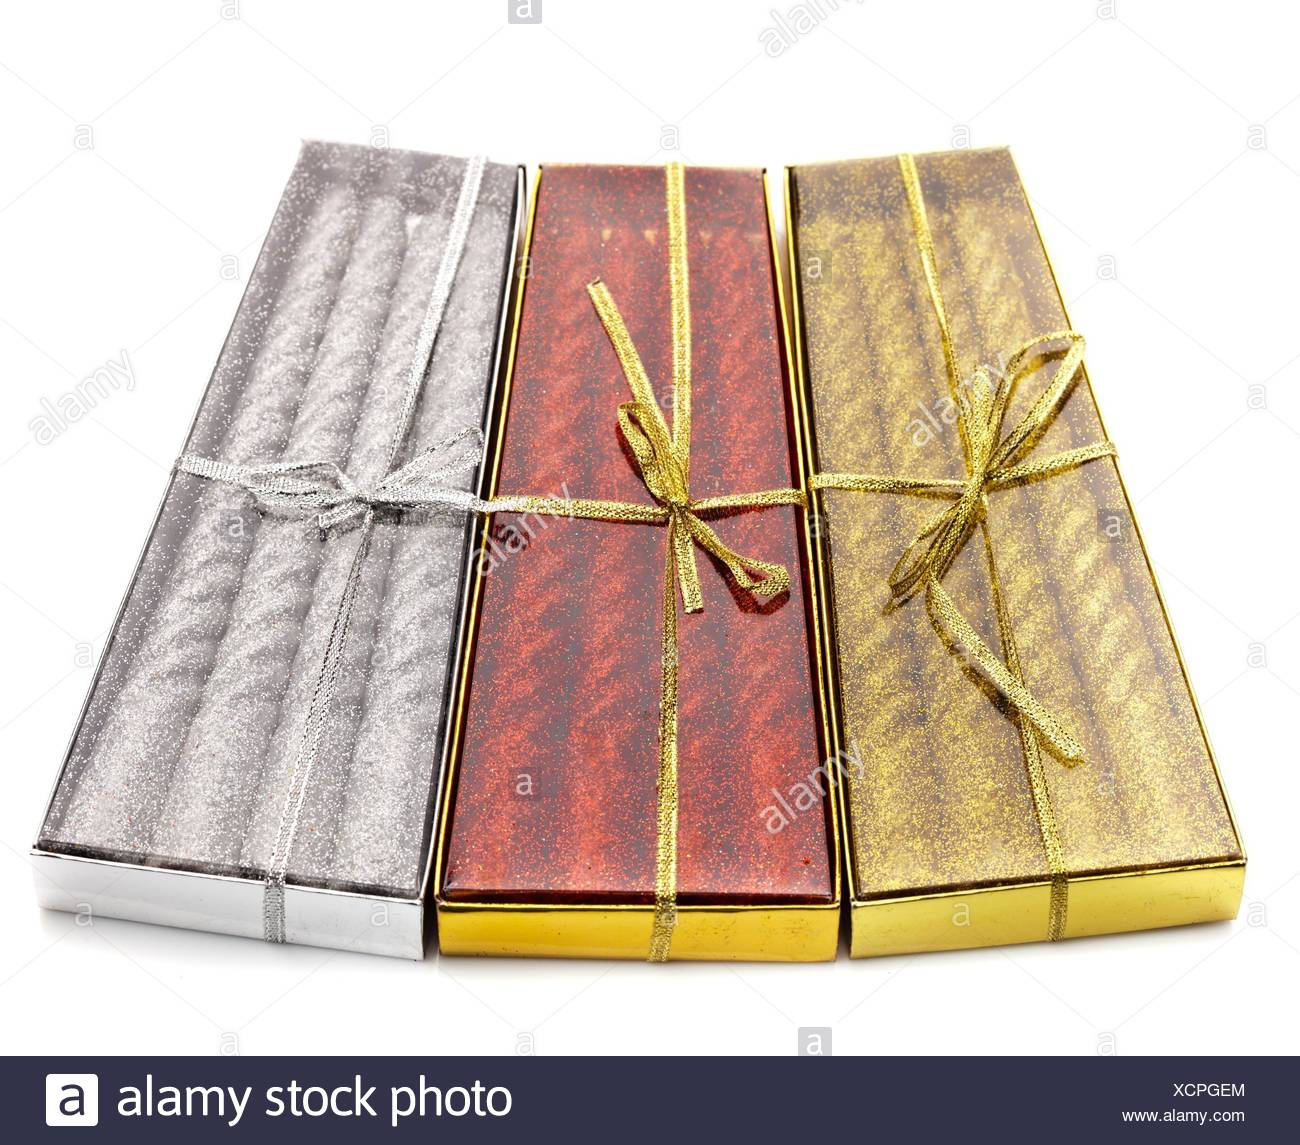 Three packs of Christmas candles red, silver and gold on white table. - Stock Image